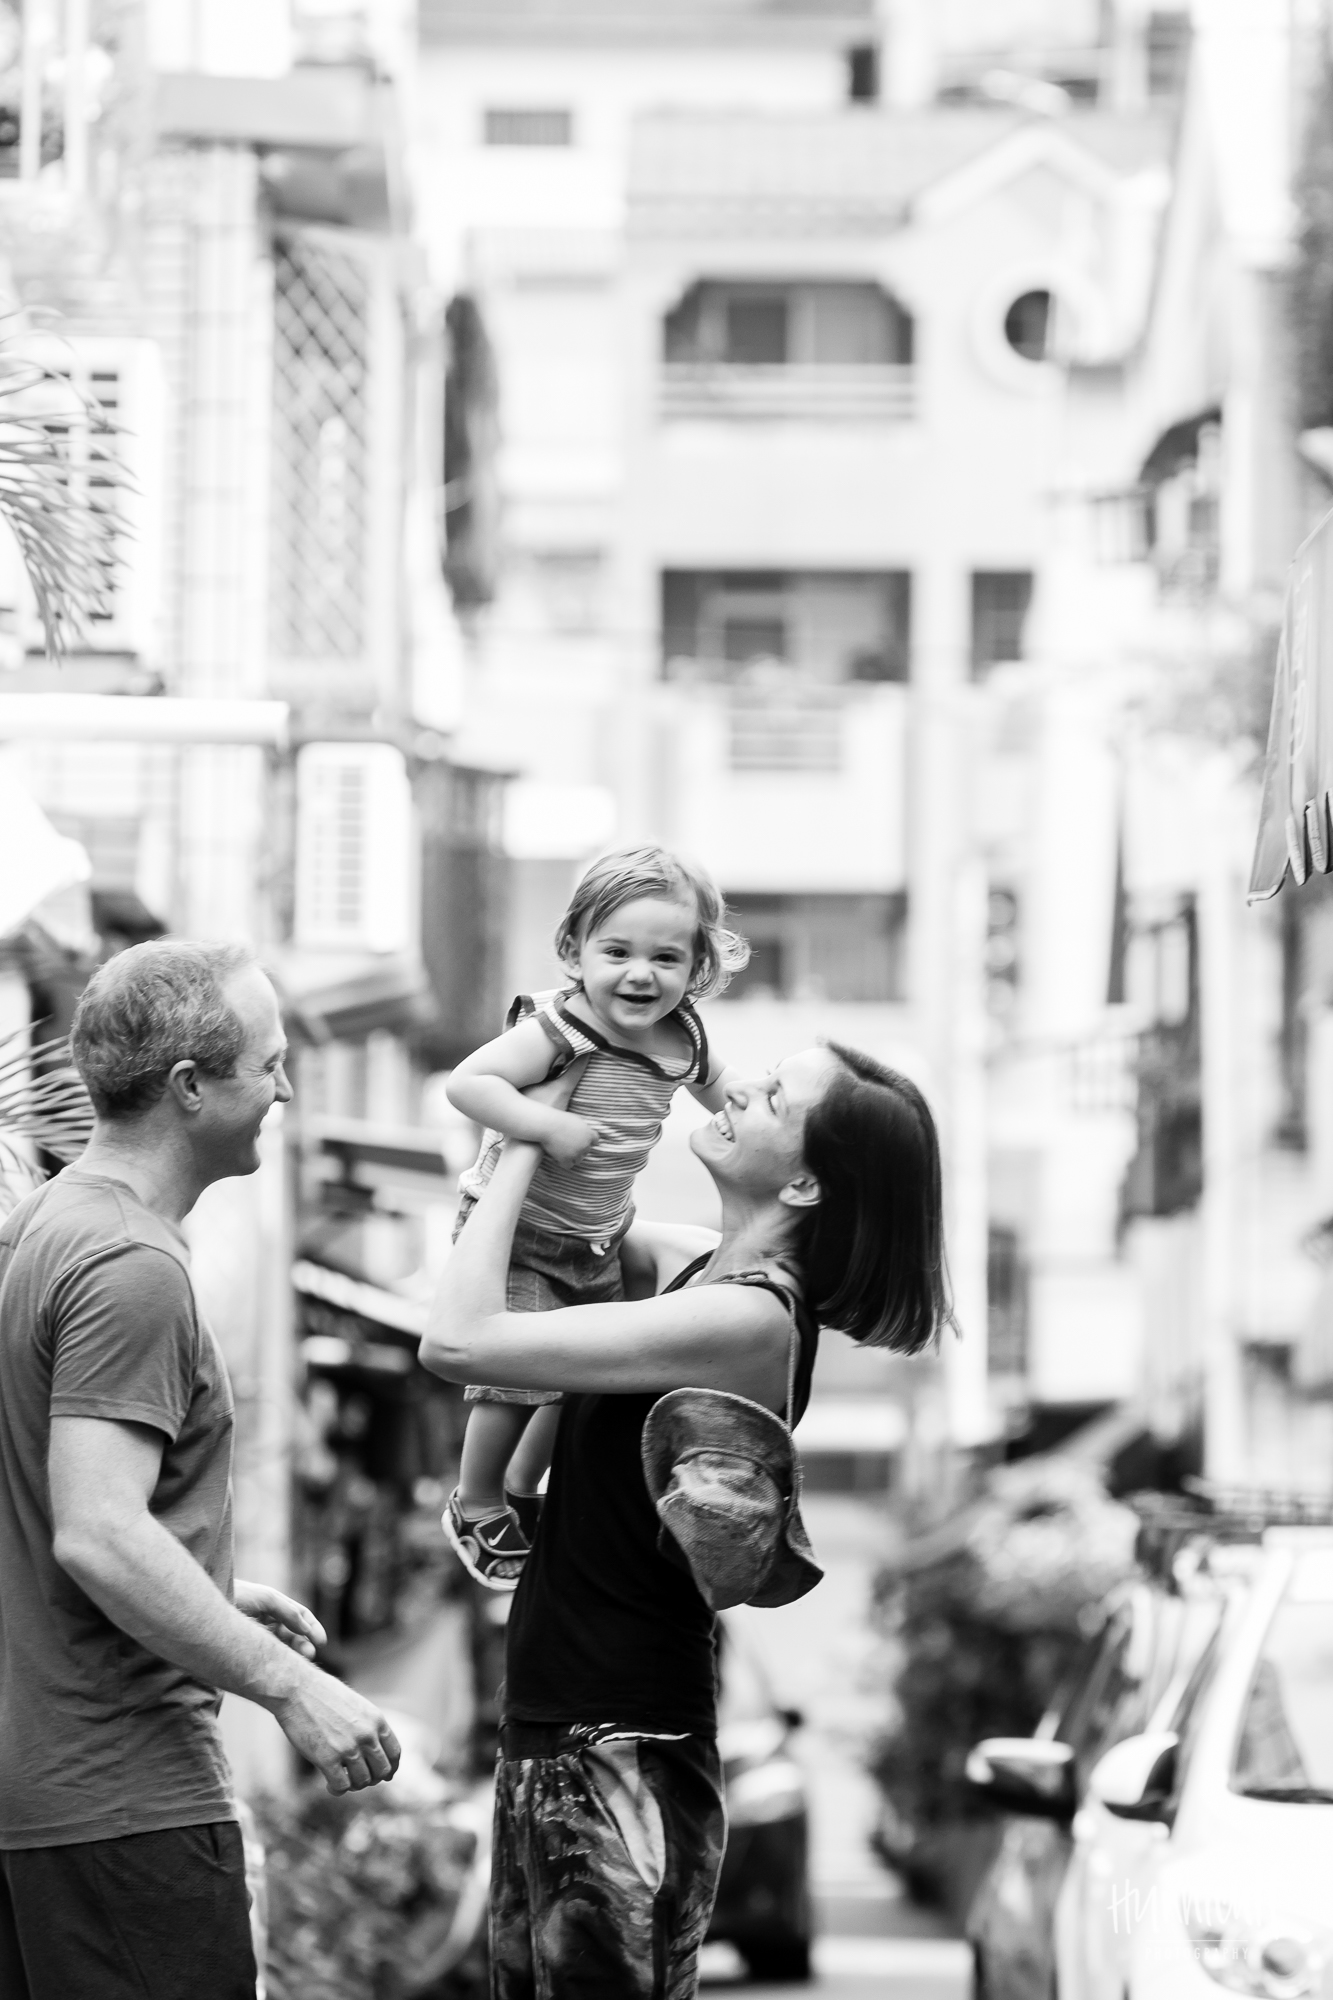 Hunnicutt_Photography_Taichung_Urban_Lifestyle_Family_Photography-5